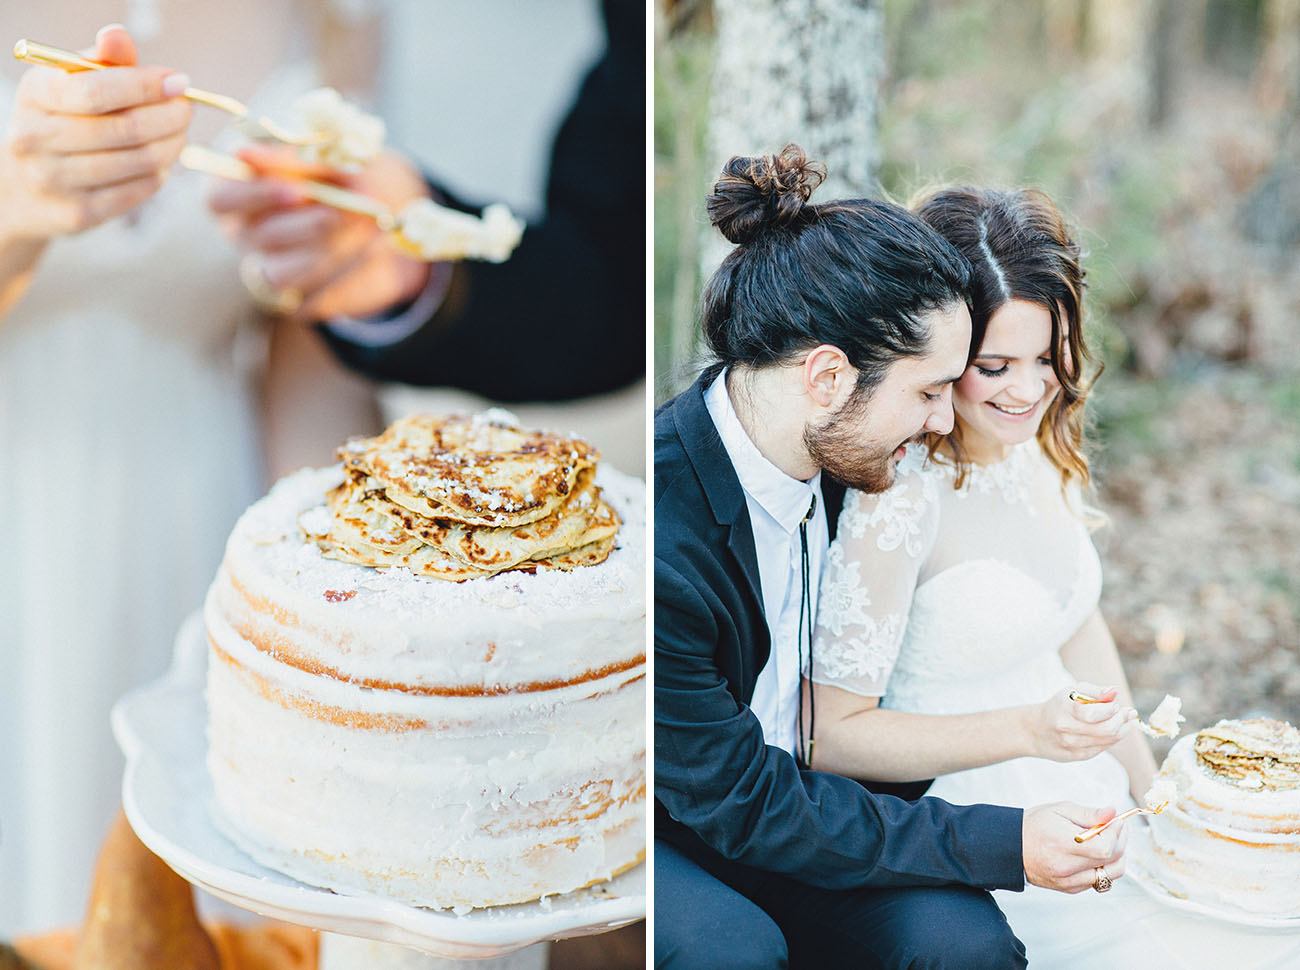 The naked cake was dusted with powdered sugar and almonds and topped with pancakes